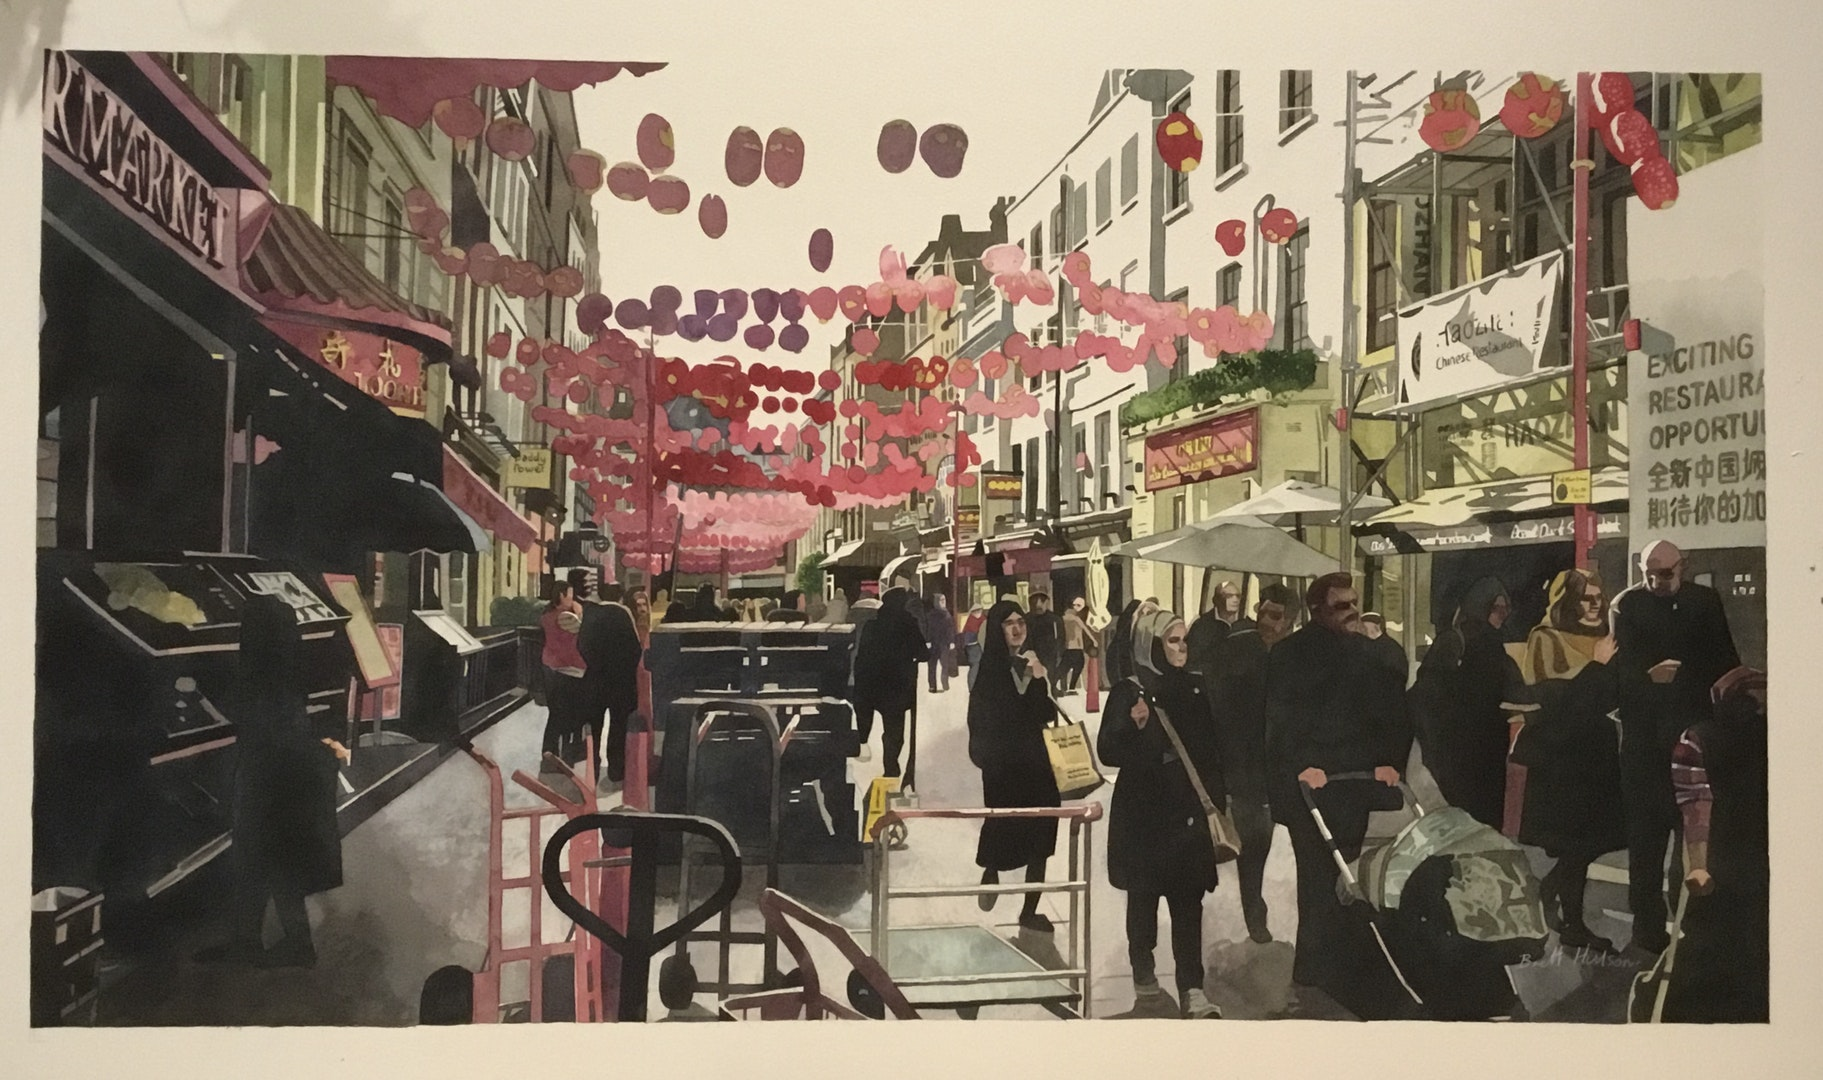 'Brett Hudson, China Town', Brett Hudson, Watercolour on paper, 70 x 80 cm